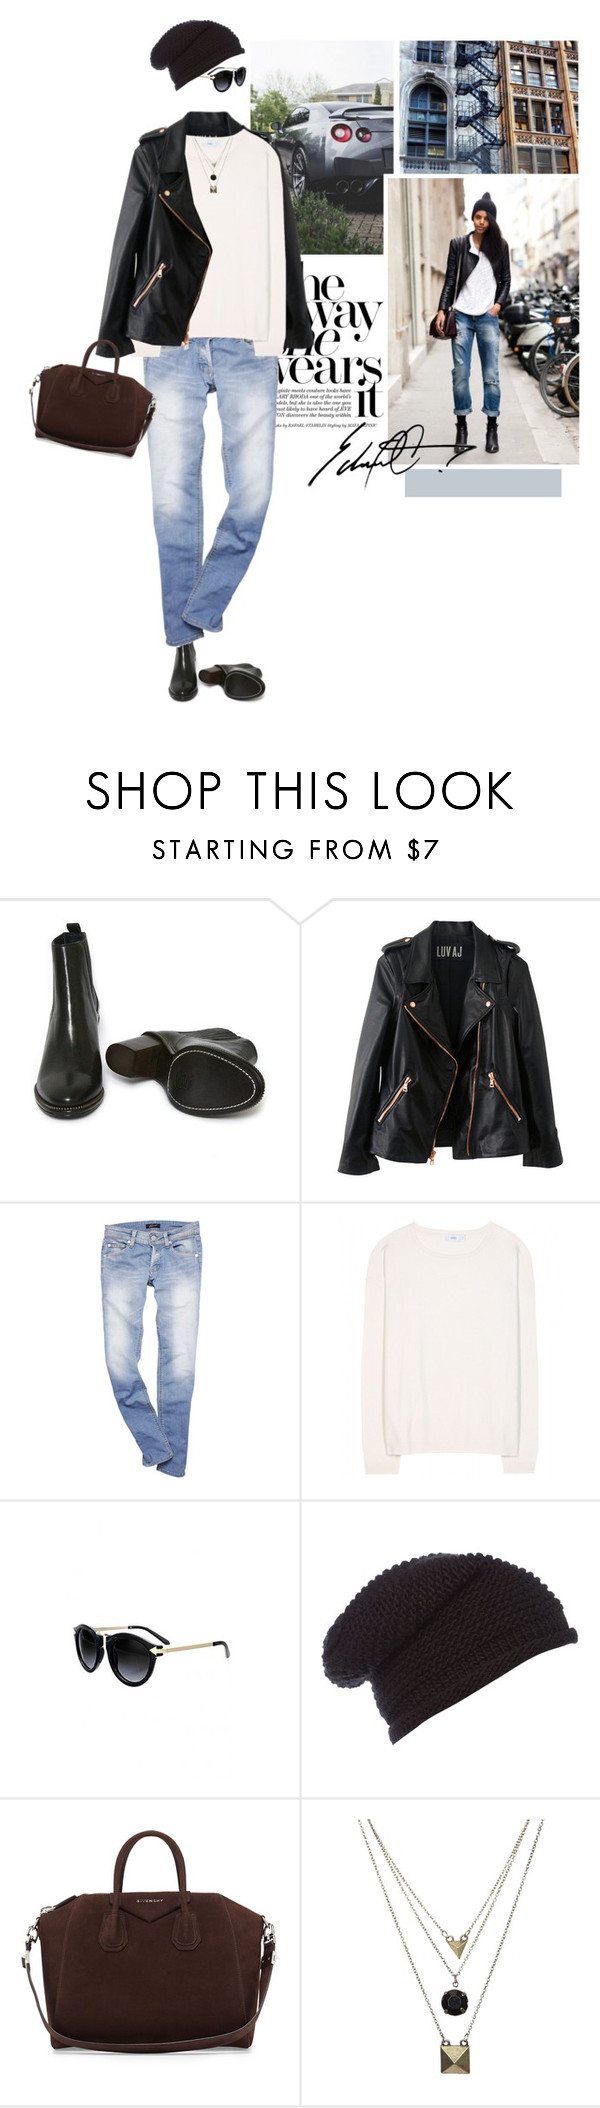 """ROCK the Beanie"" by erino9519 ❤ liked on Polyvore featuring Opening Ceremony, Rosegold, Closed, Label Lab, Givenchy and Gathering Eye"